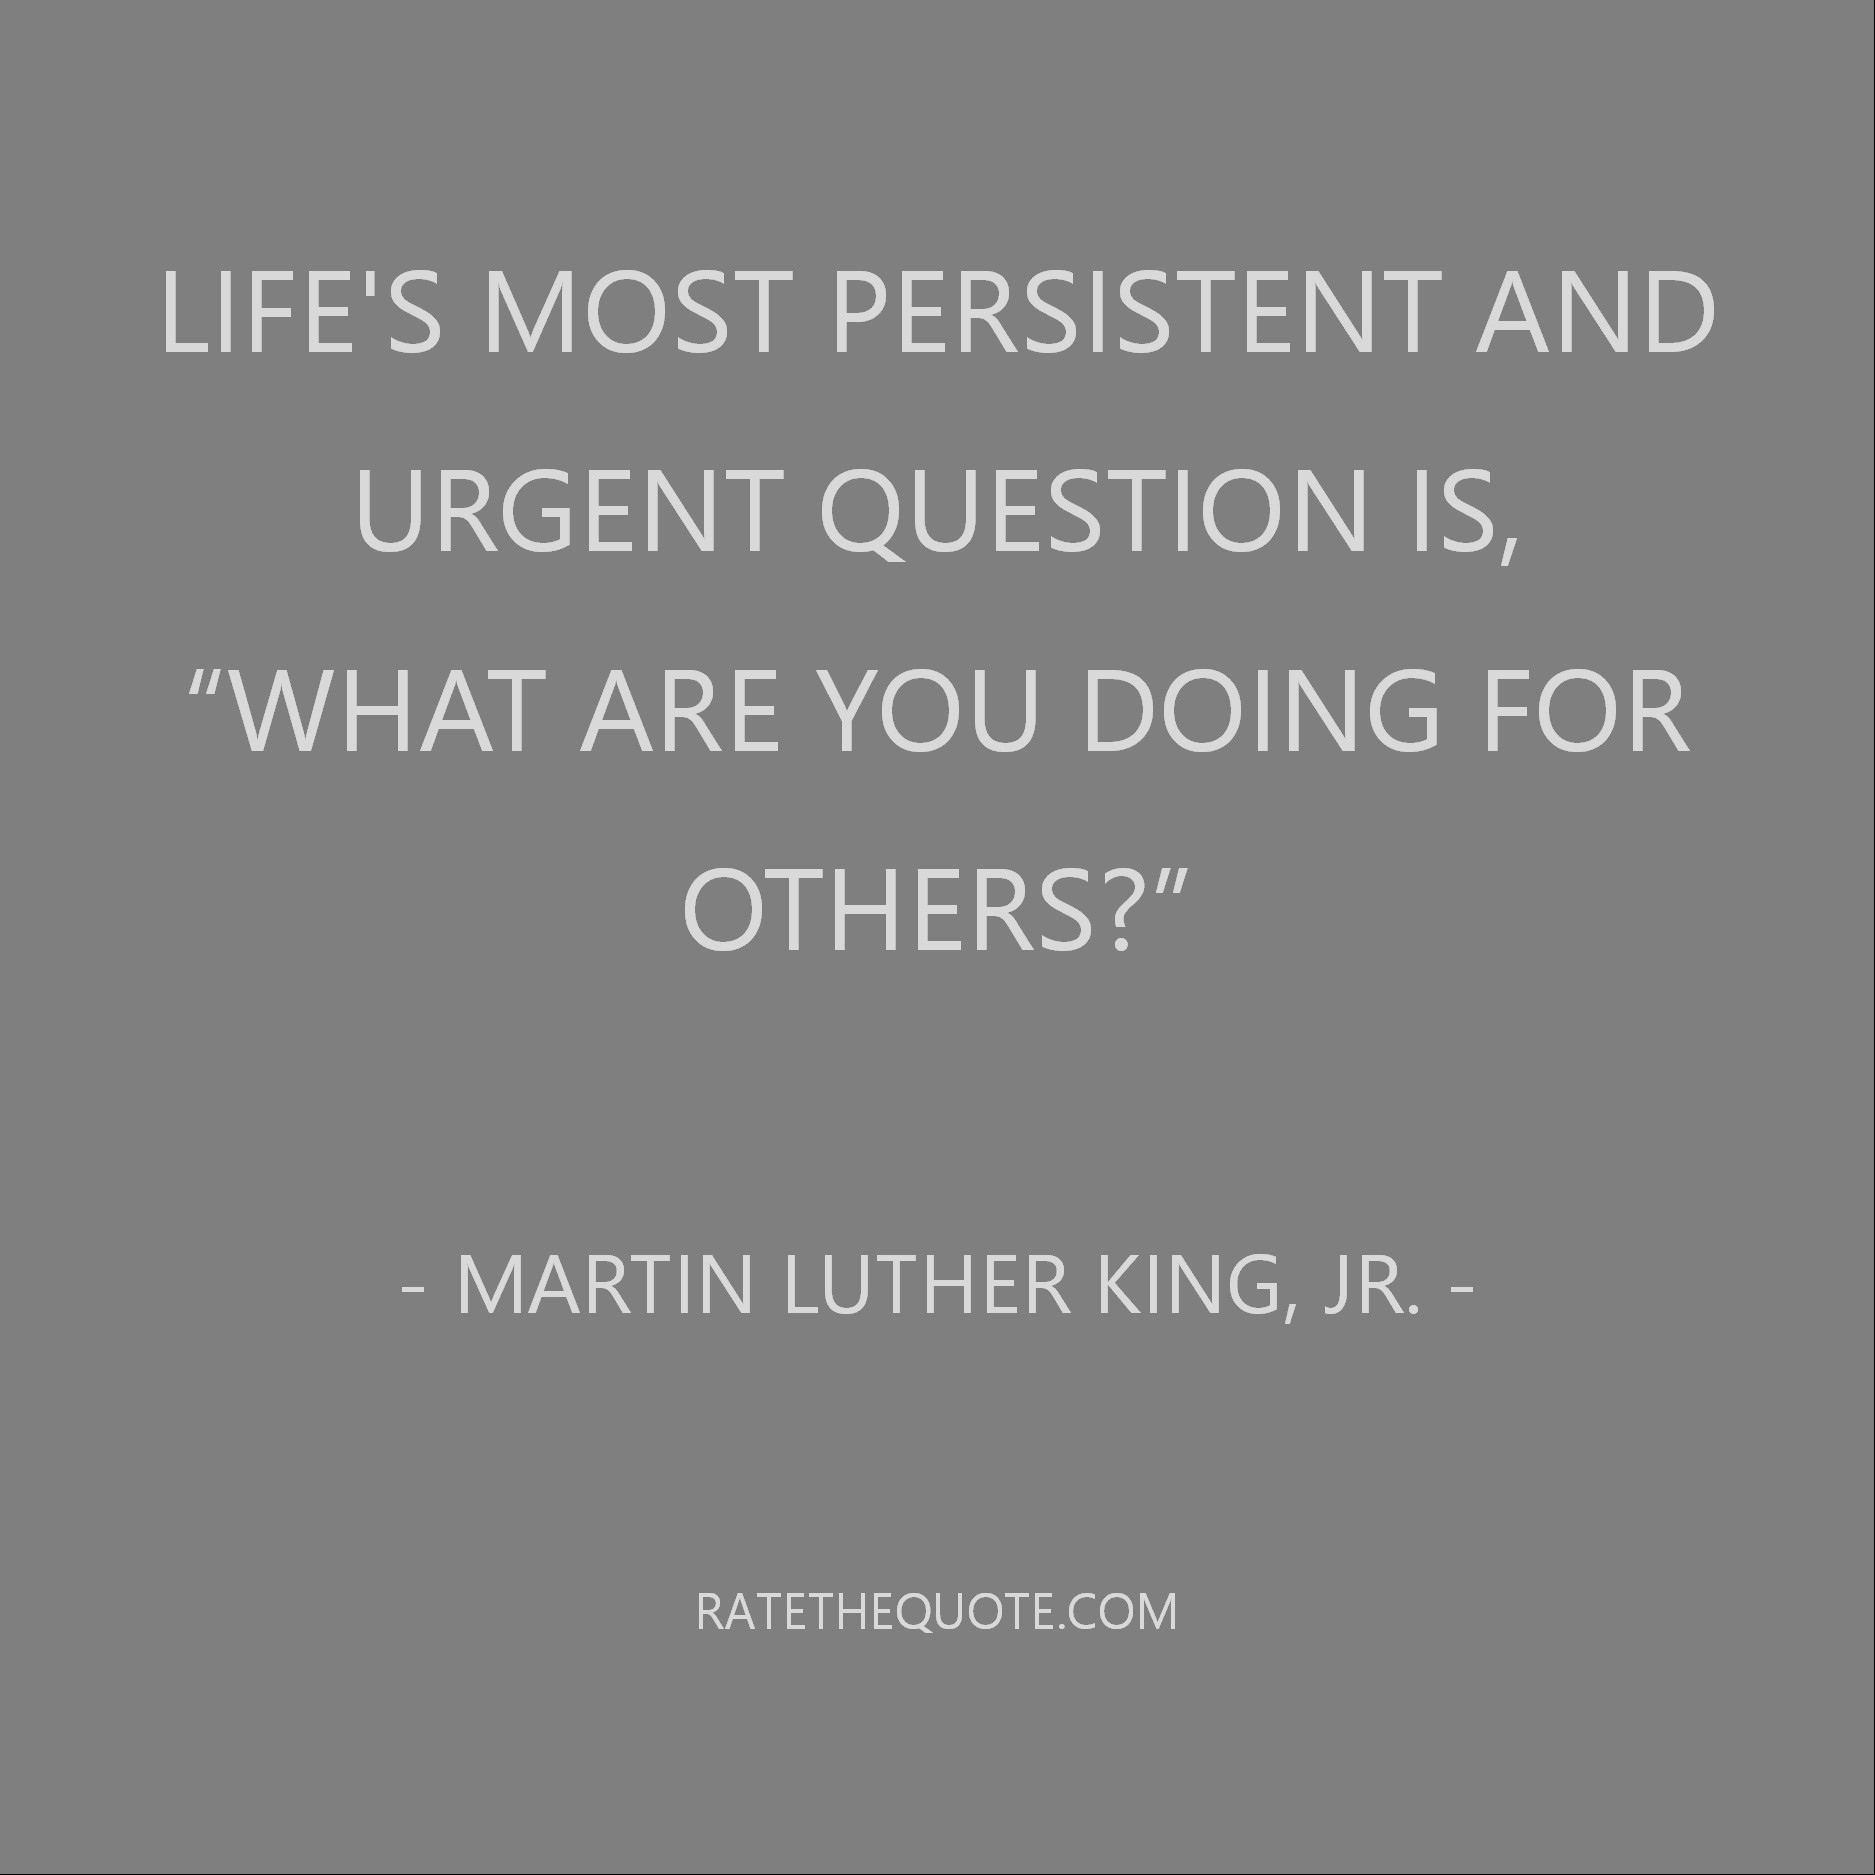 Life's most persistent and urgent question is, 'What are you doing for others?' Martin Luther King, Jr.